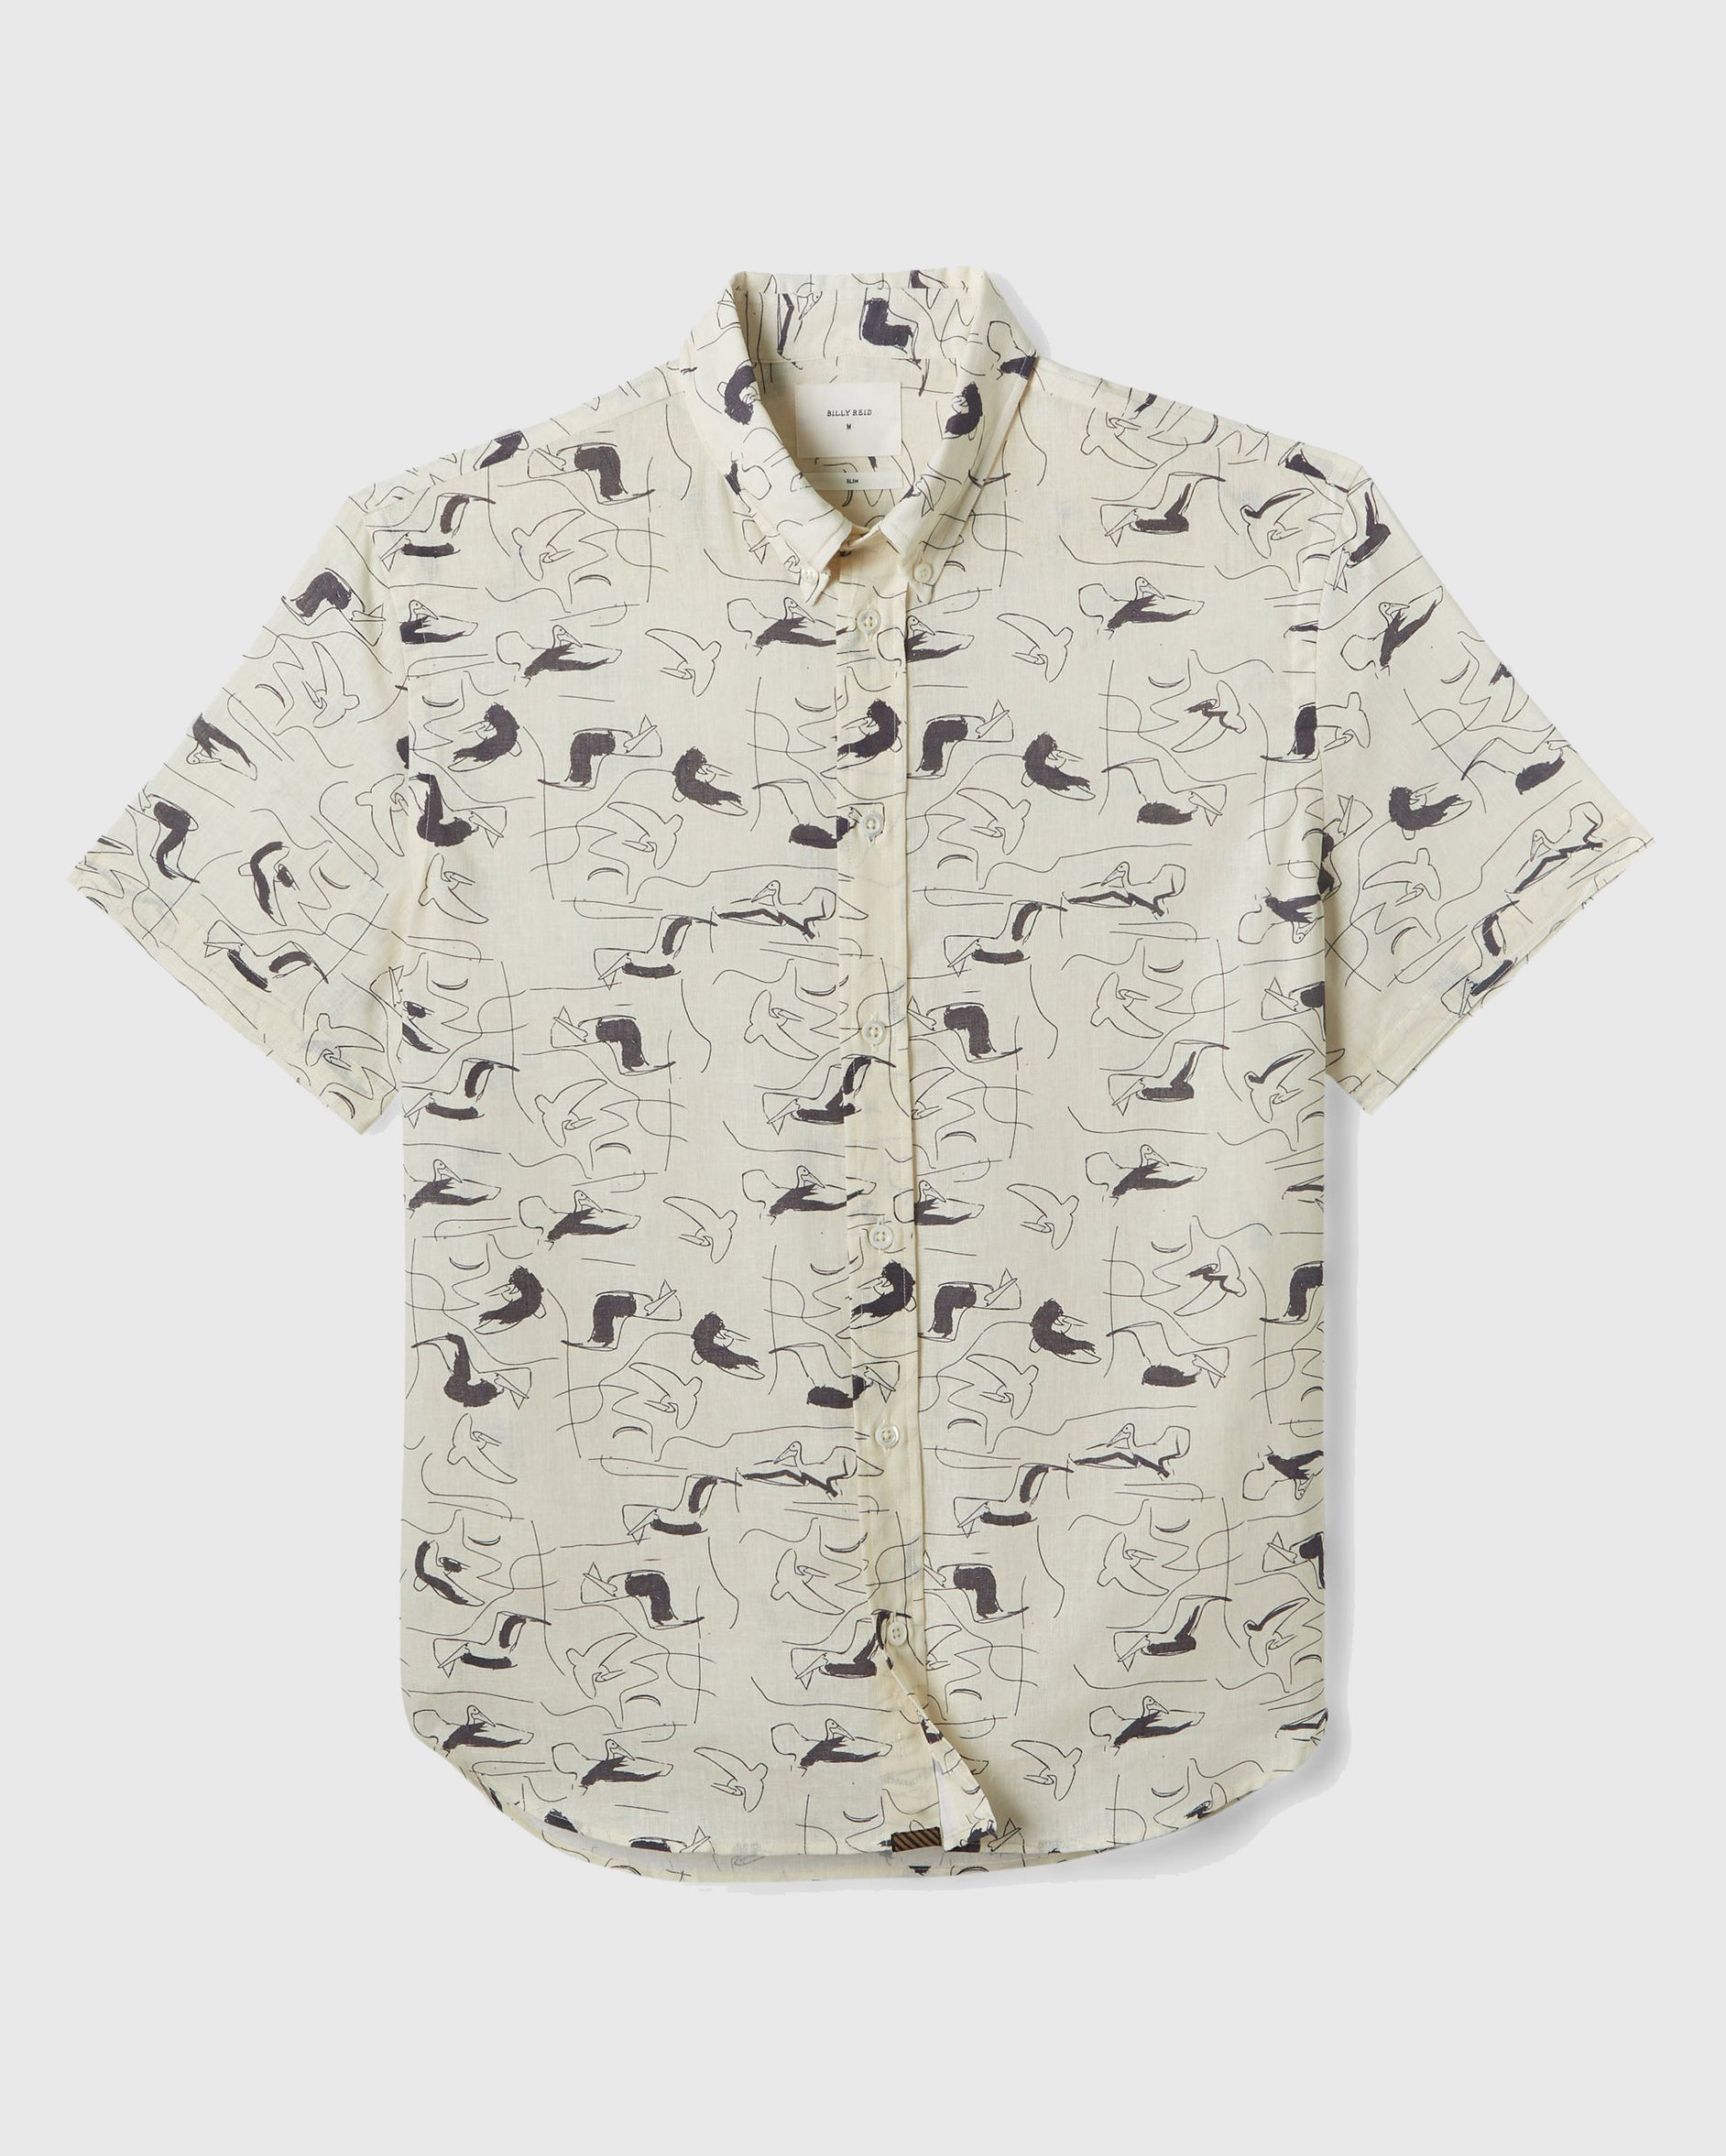 Billy Reid's casual Murphy shirt is a warm-weather essential, with a slim fit, button-down collar and clean, no-pocket silhouette. This version is made in Italy and features our custom Pencil Pad print, designed in-house at our Florence, Alabama studio, exclusive to Billy Reid, and inspired by our pelican motif.